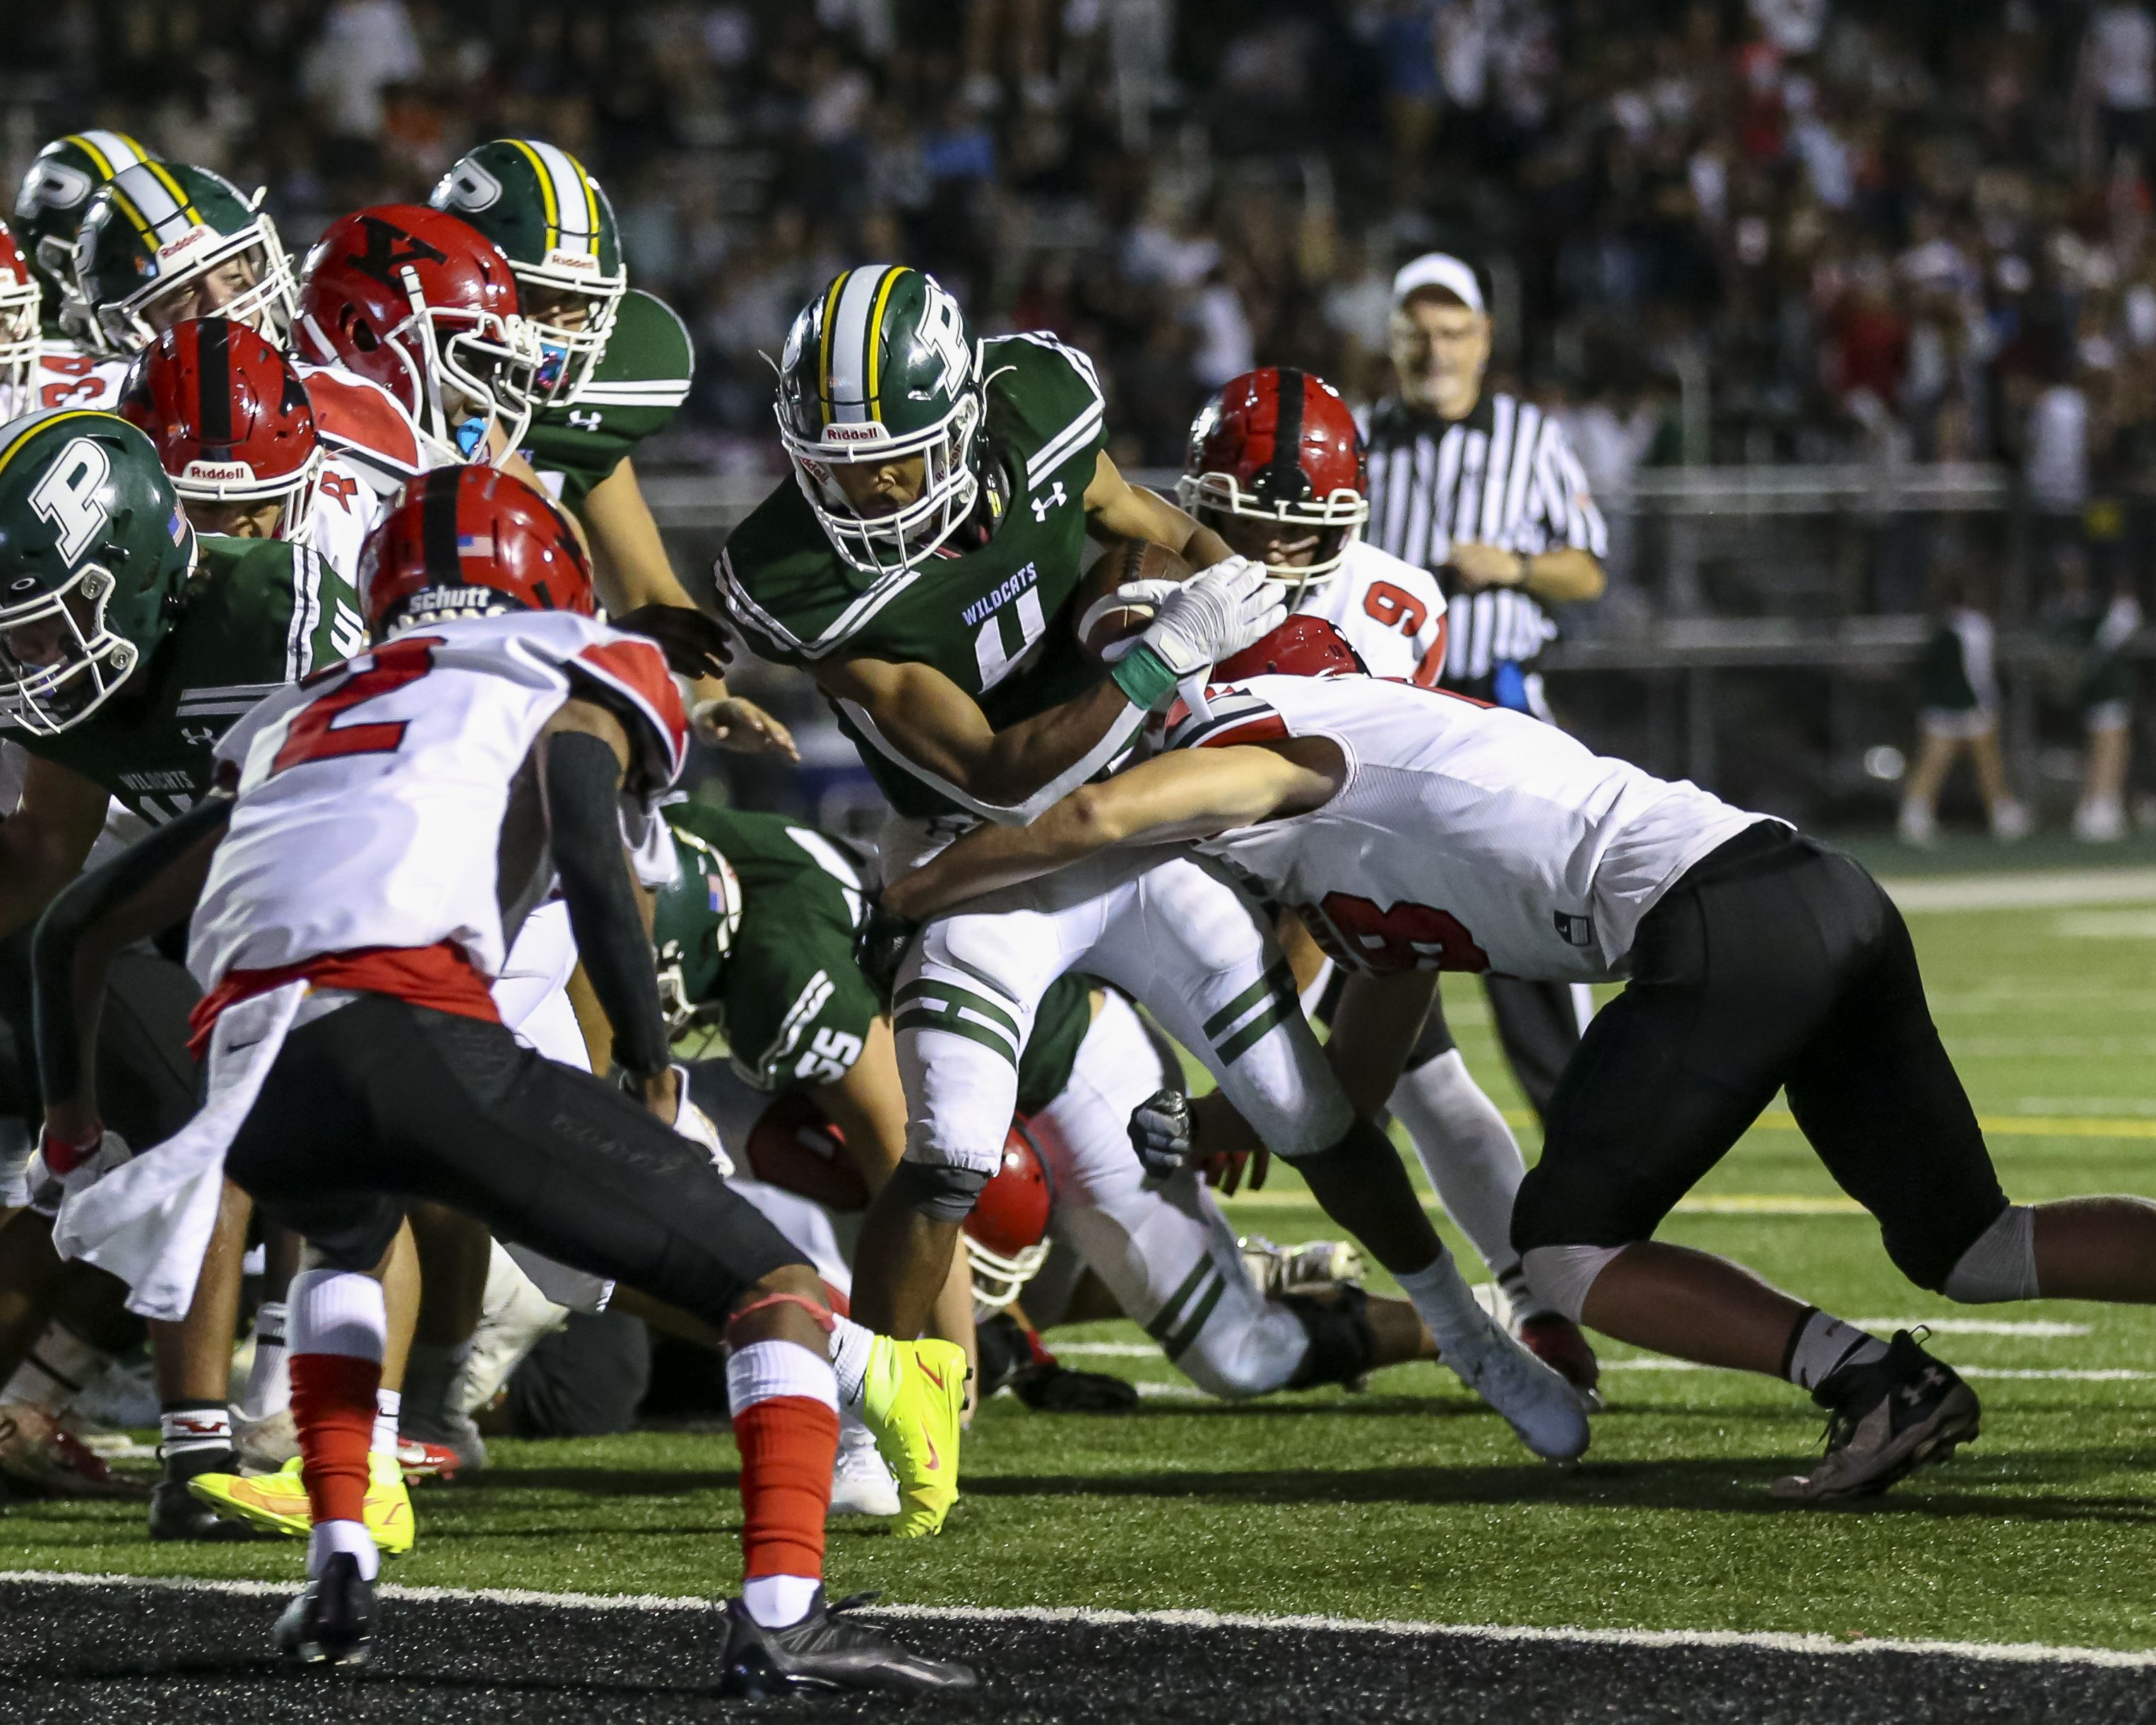 Plainfield Central's Aaron Larkins (4) scores a late touchdown during football game between Plainfield Central vs Yorkville.  Sept 2, 2021.  Gary E Duncan Sr. for Shaw Local.